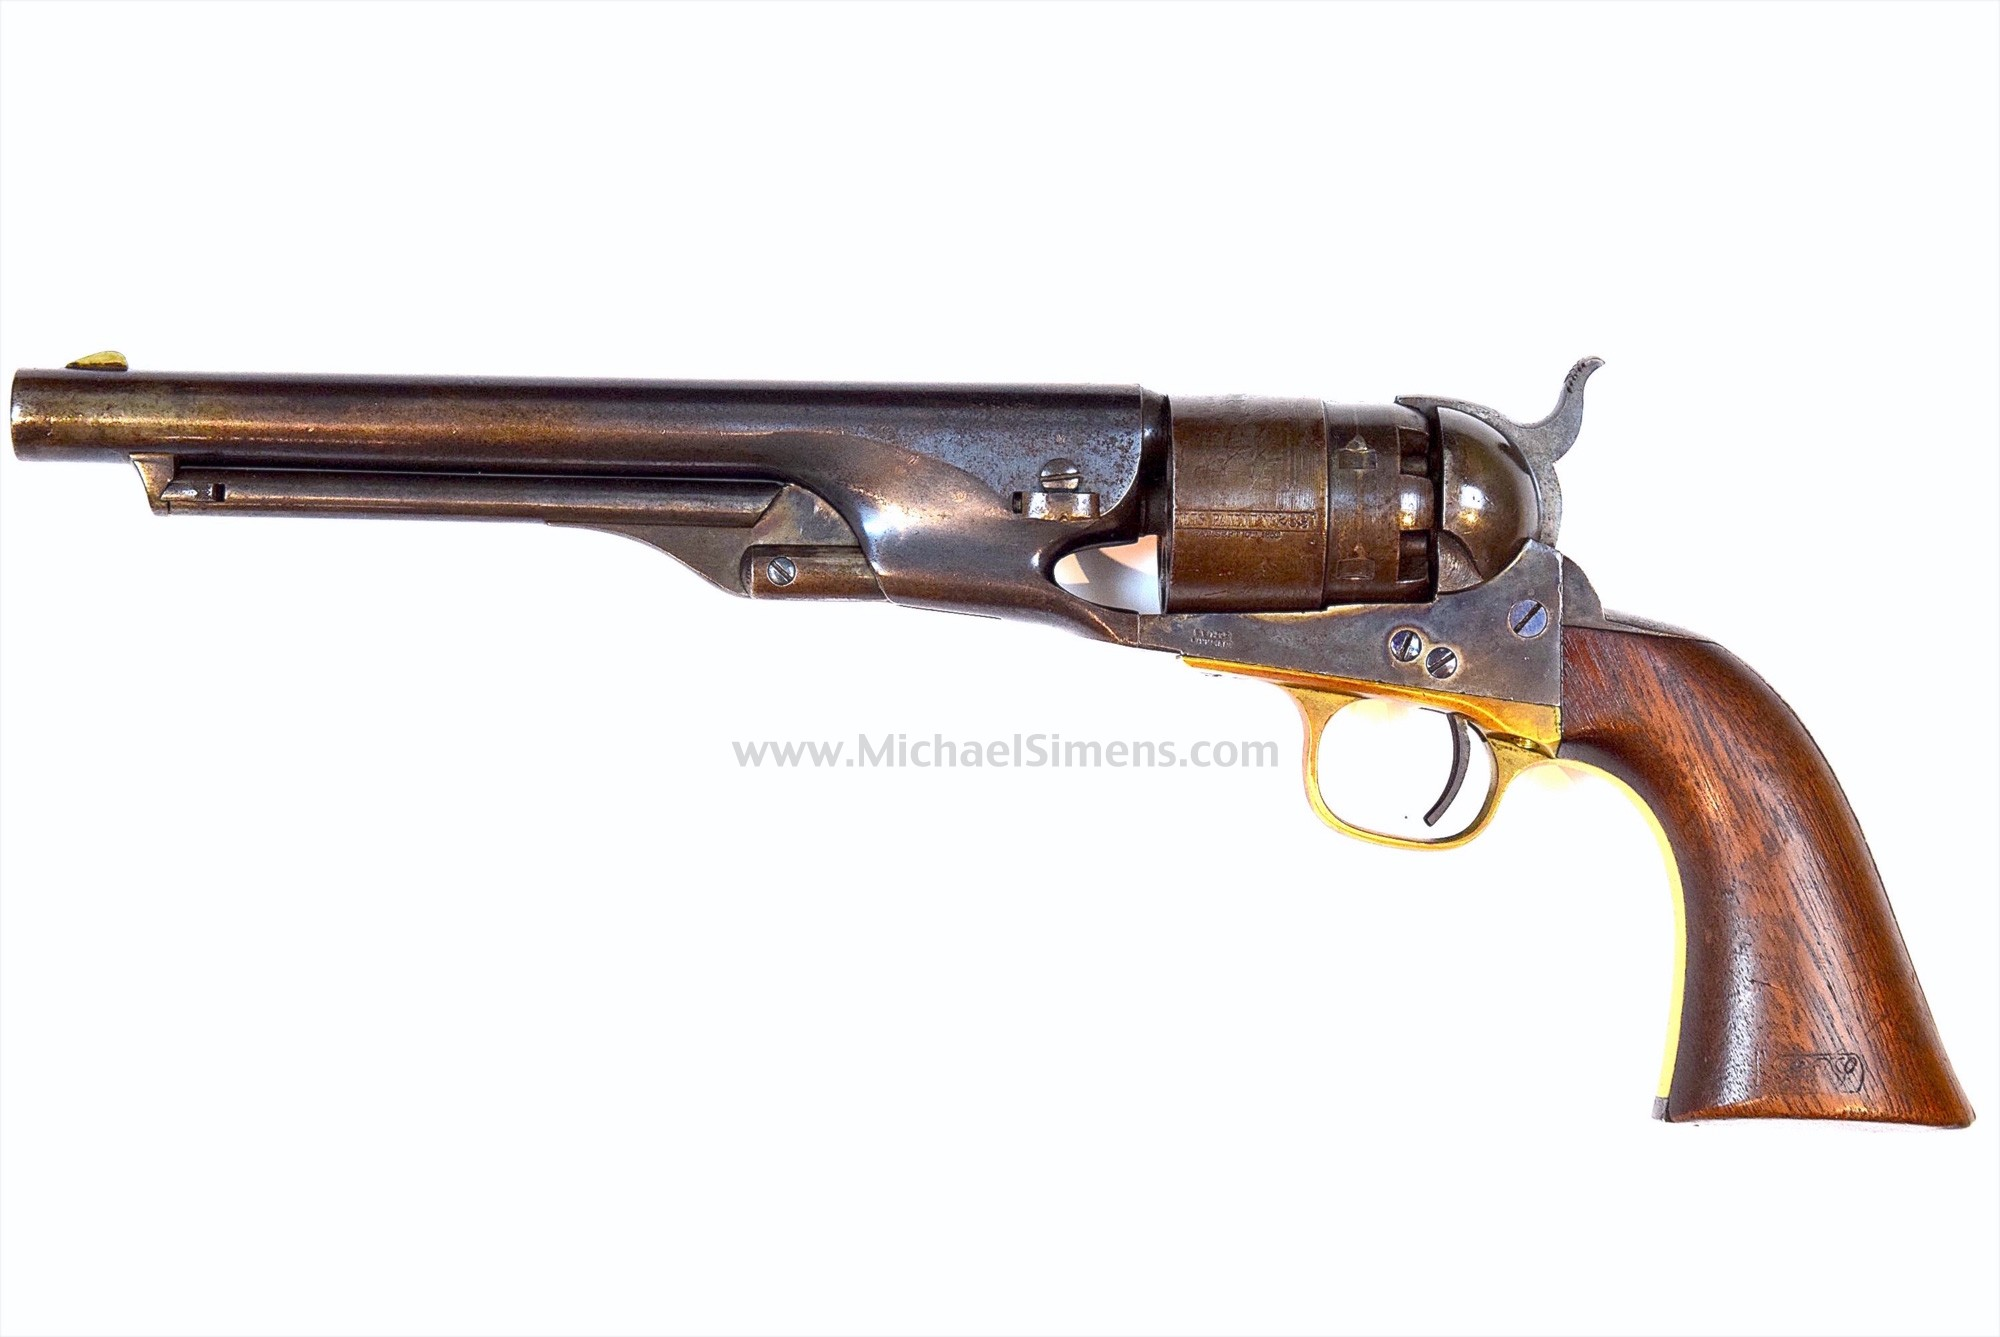 BEAUTIFUL, HIGH-FINISH COLT 1860 ARMY REVOLVER OF THE CIVIL WAR